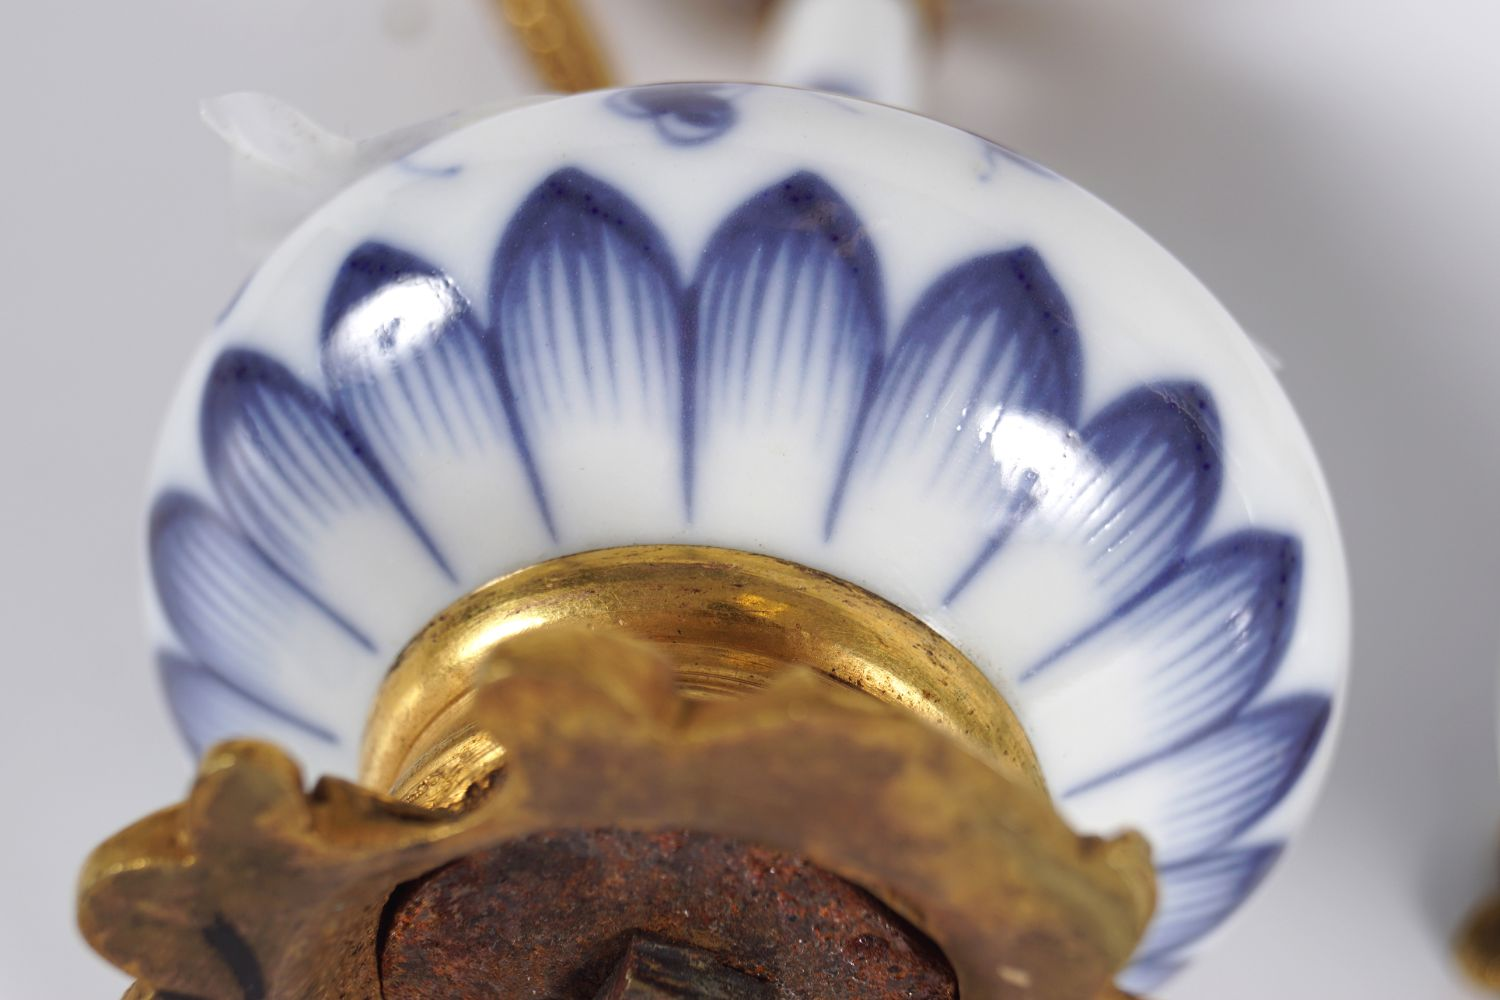 PAIR OF 19TH-CENT BLUE AND WHITE WATER SPRINKLERS - Image 5 of 5